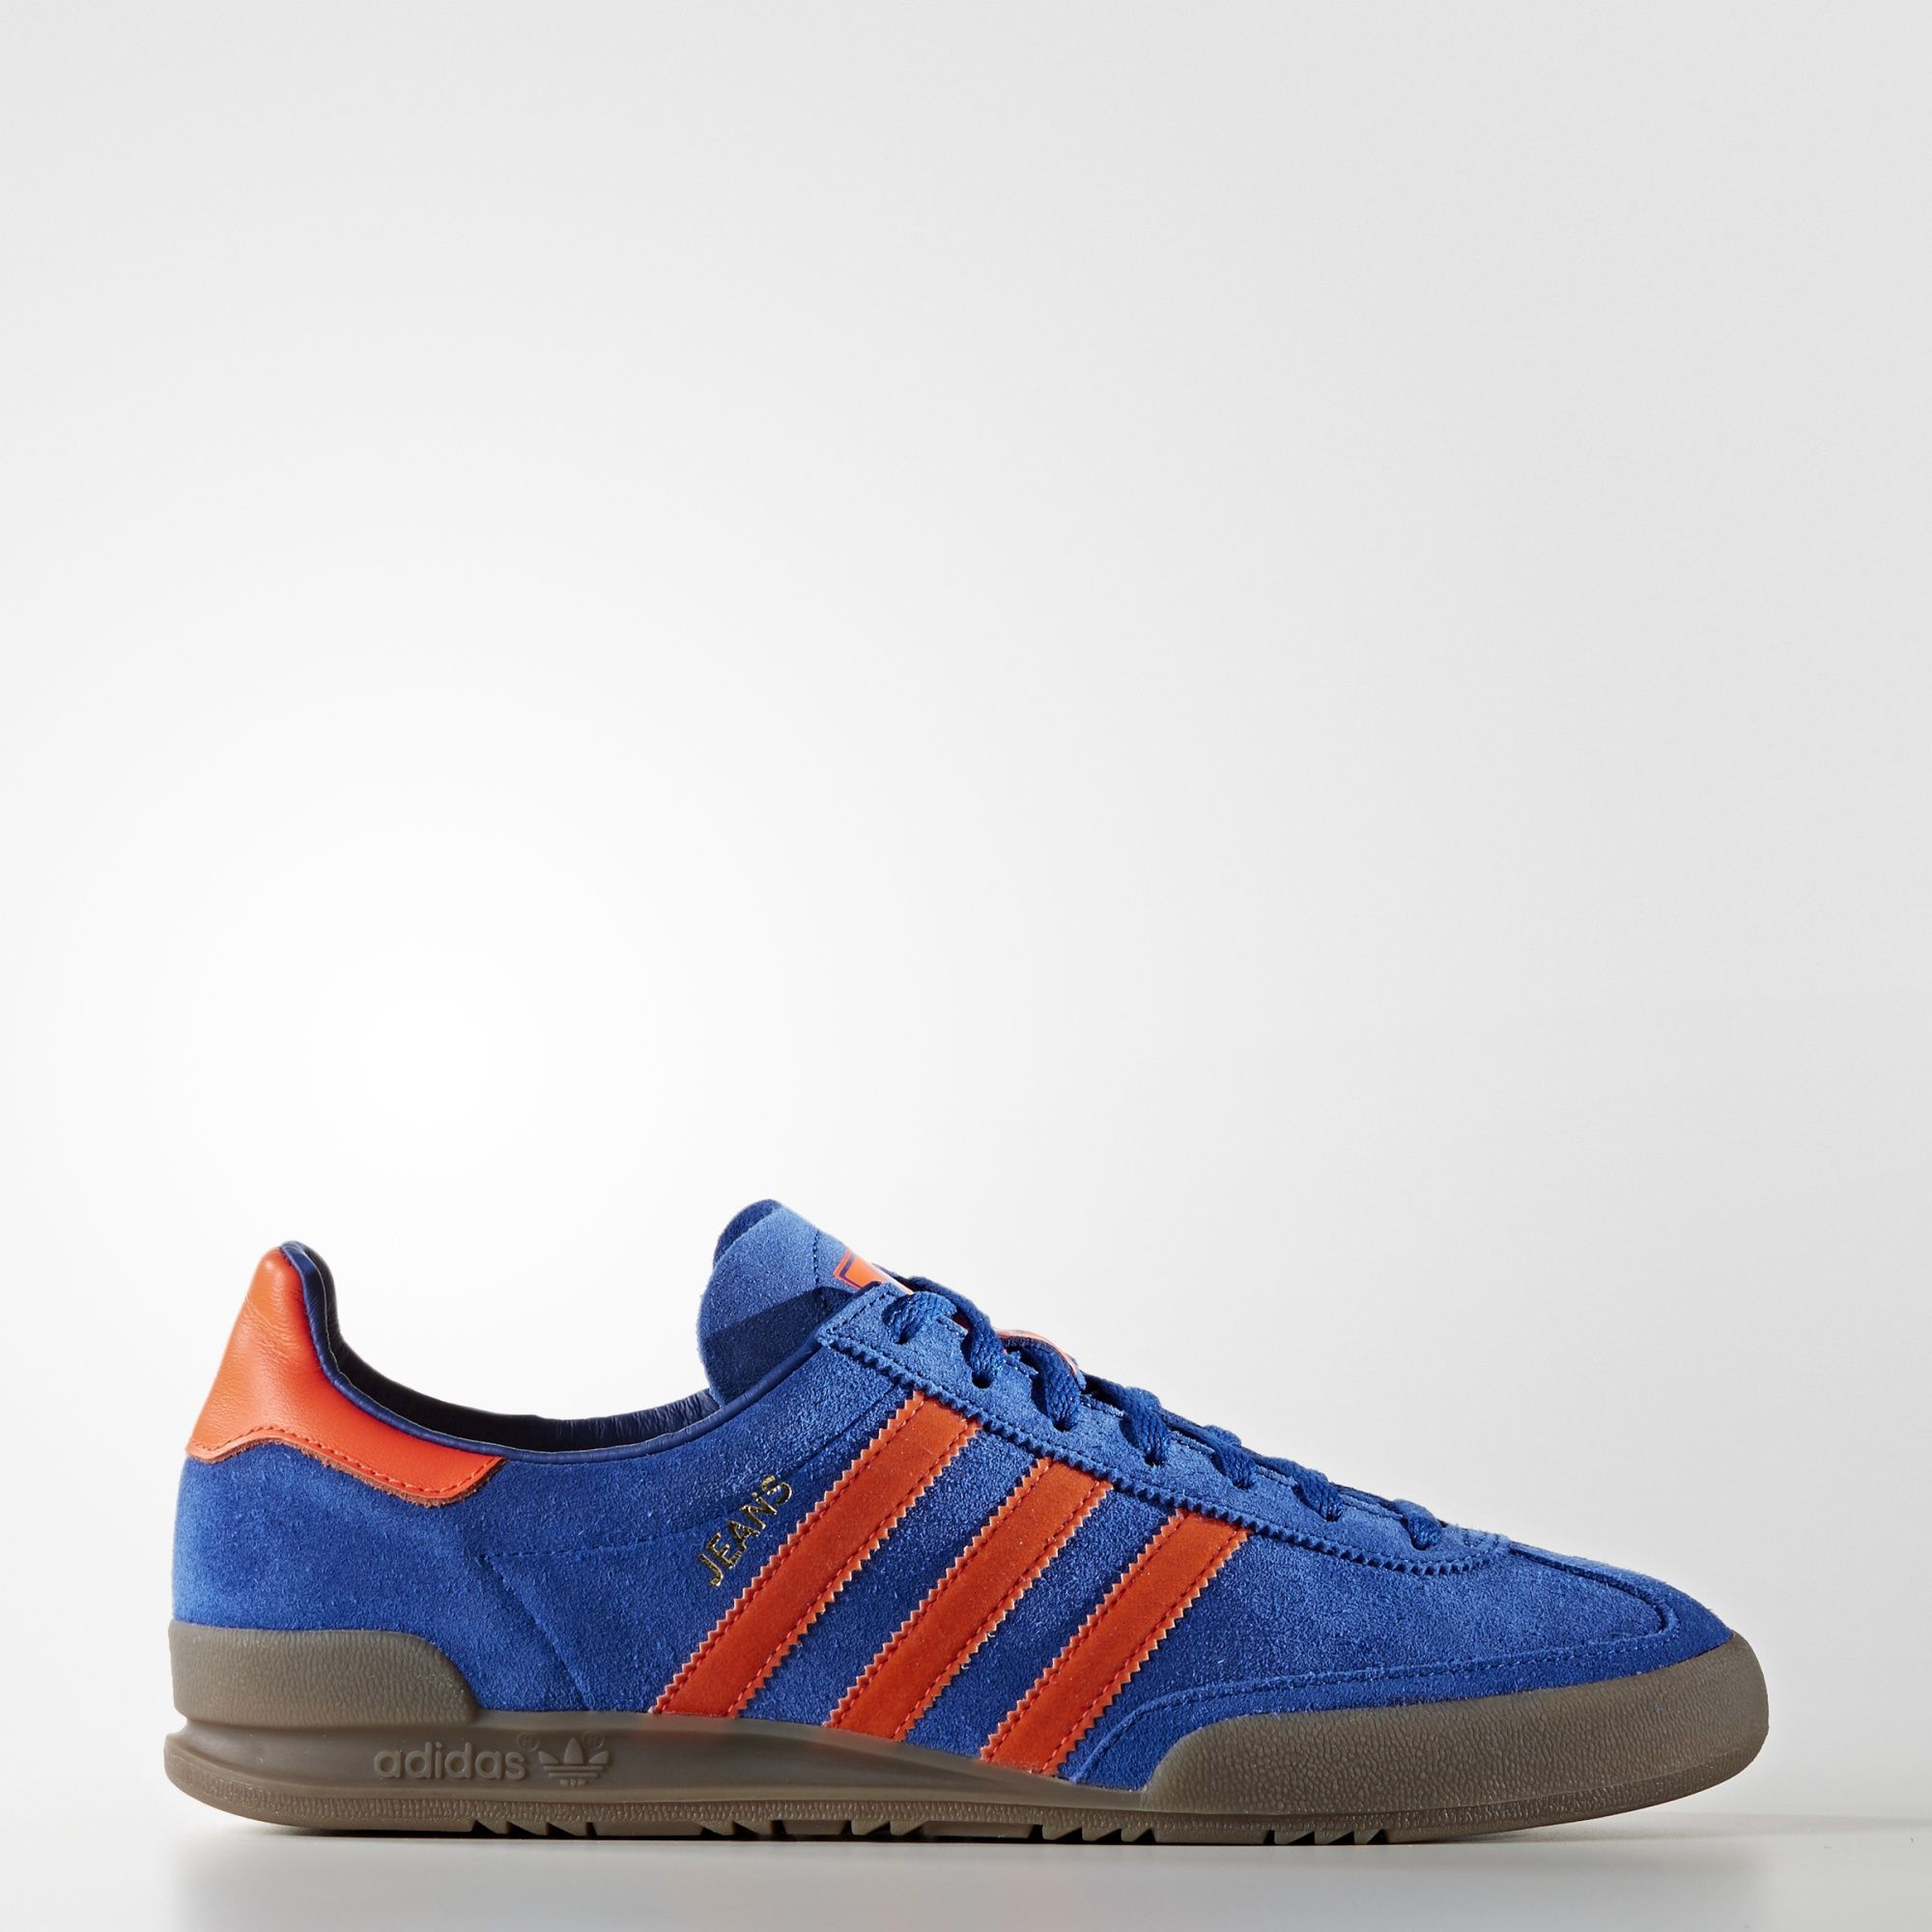 adidas - Jeans Shoes